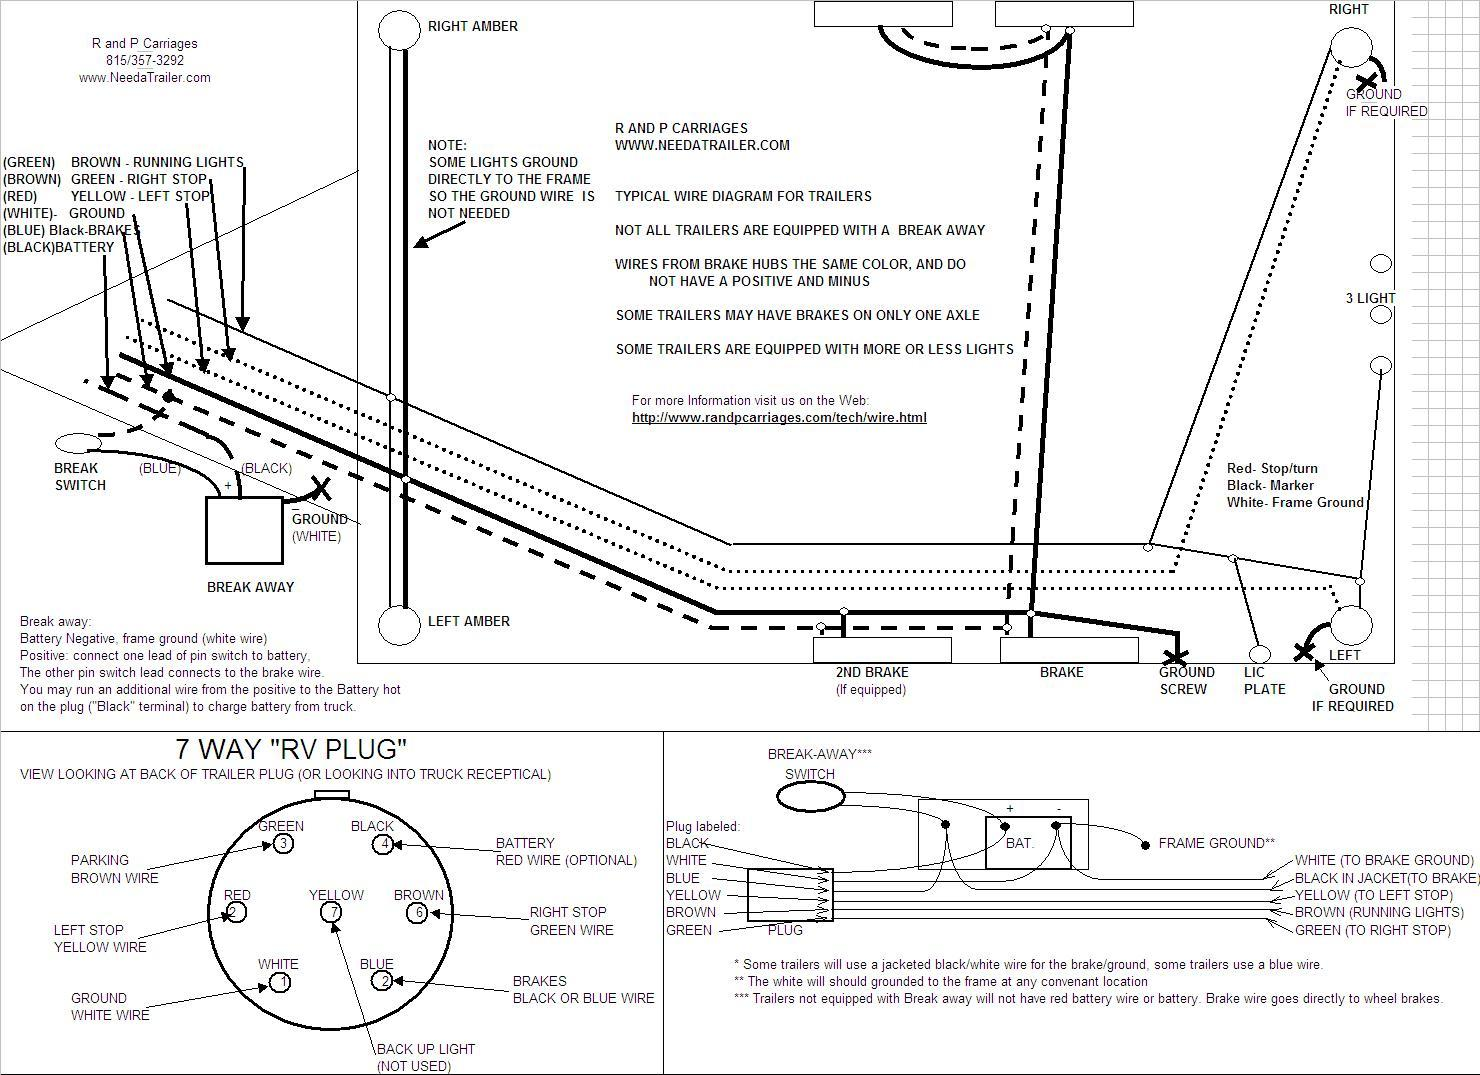 7 way wiring diagram brake controller installation instructions truck to trailer wiring diagram at crackthecode.co